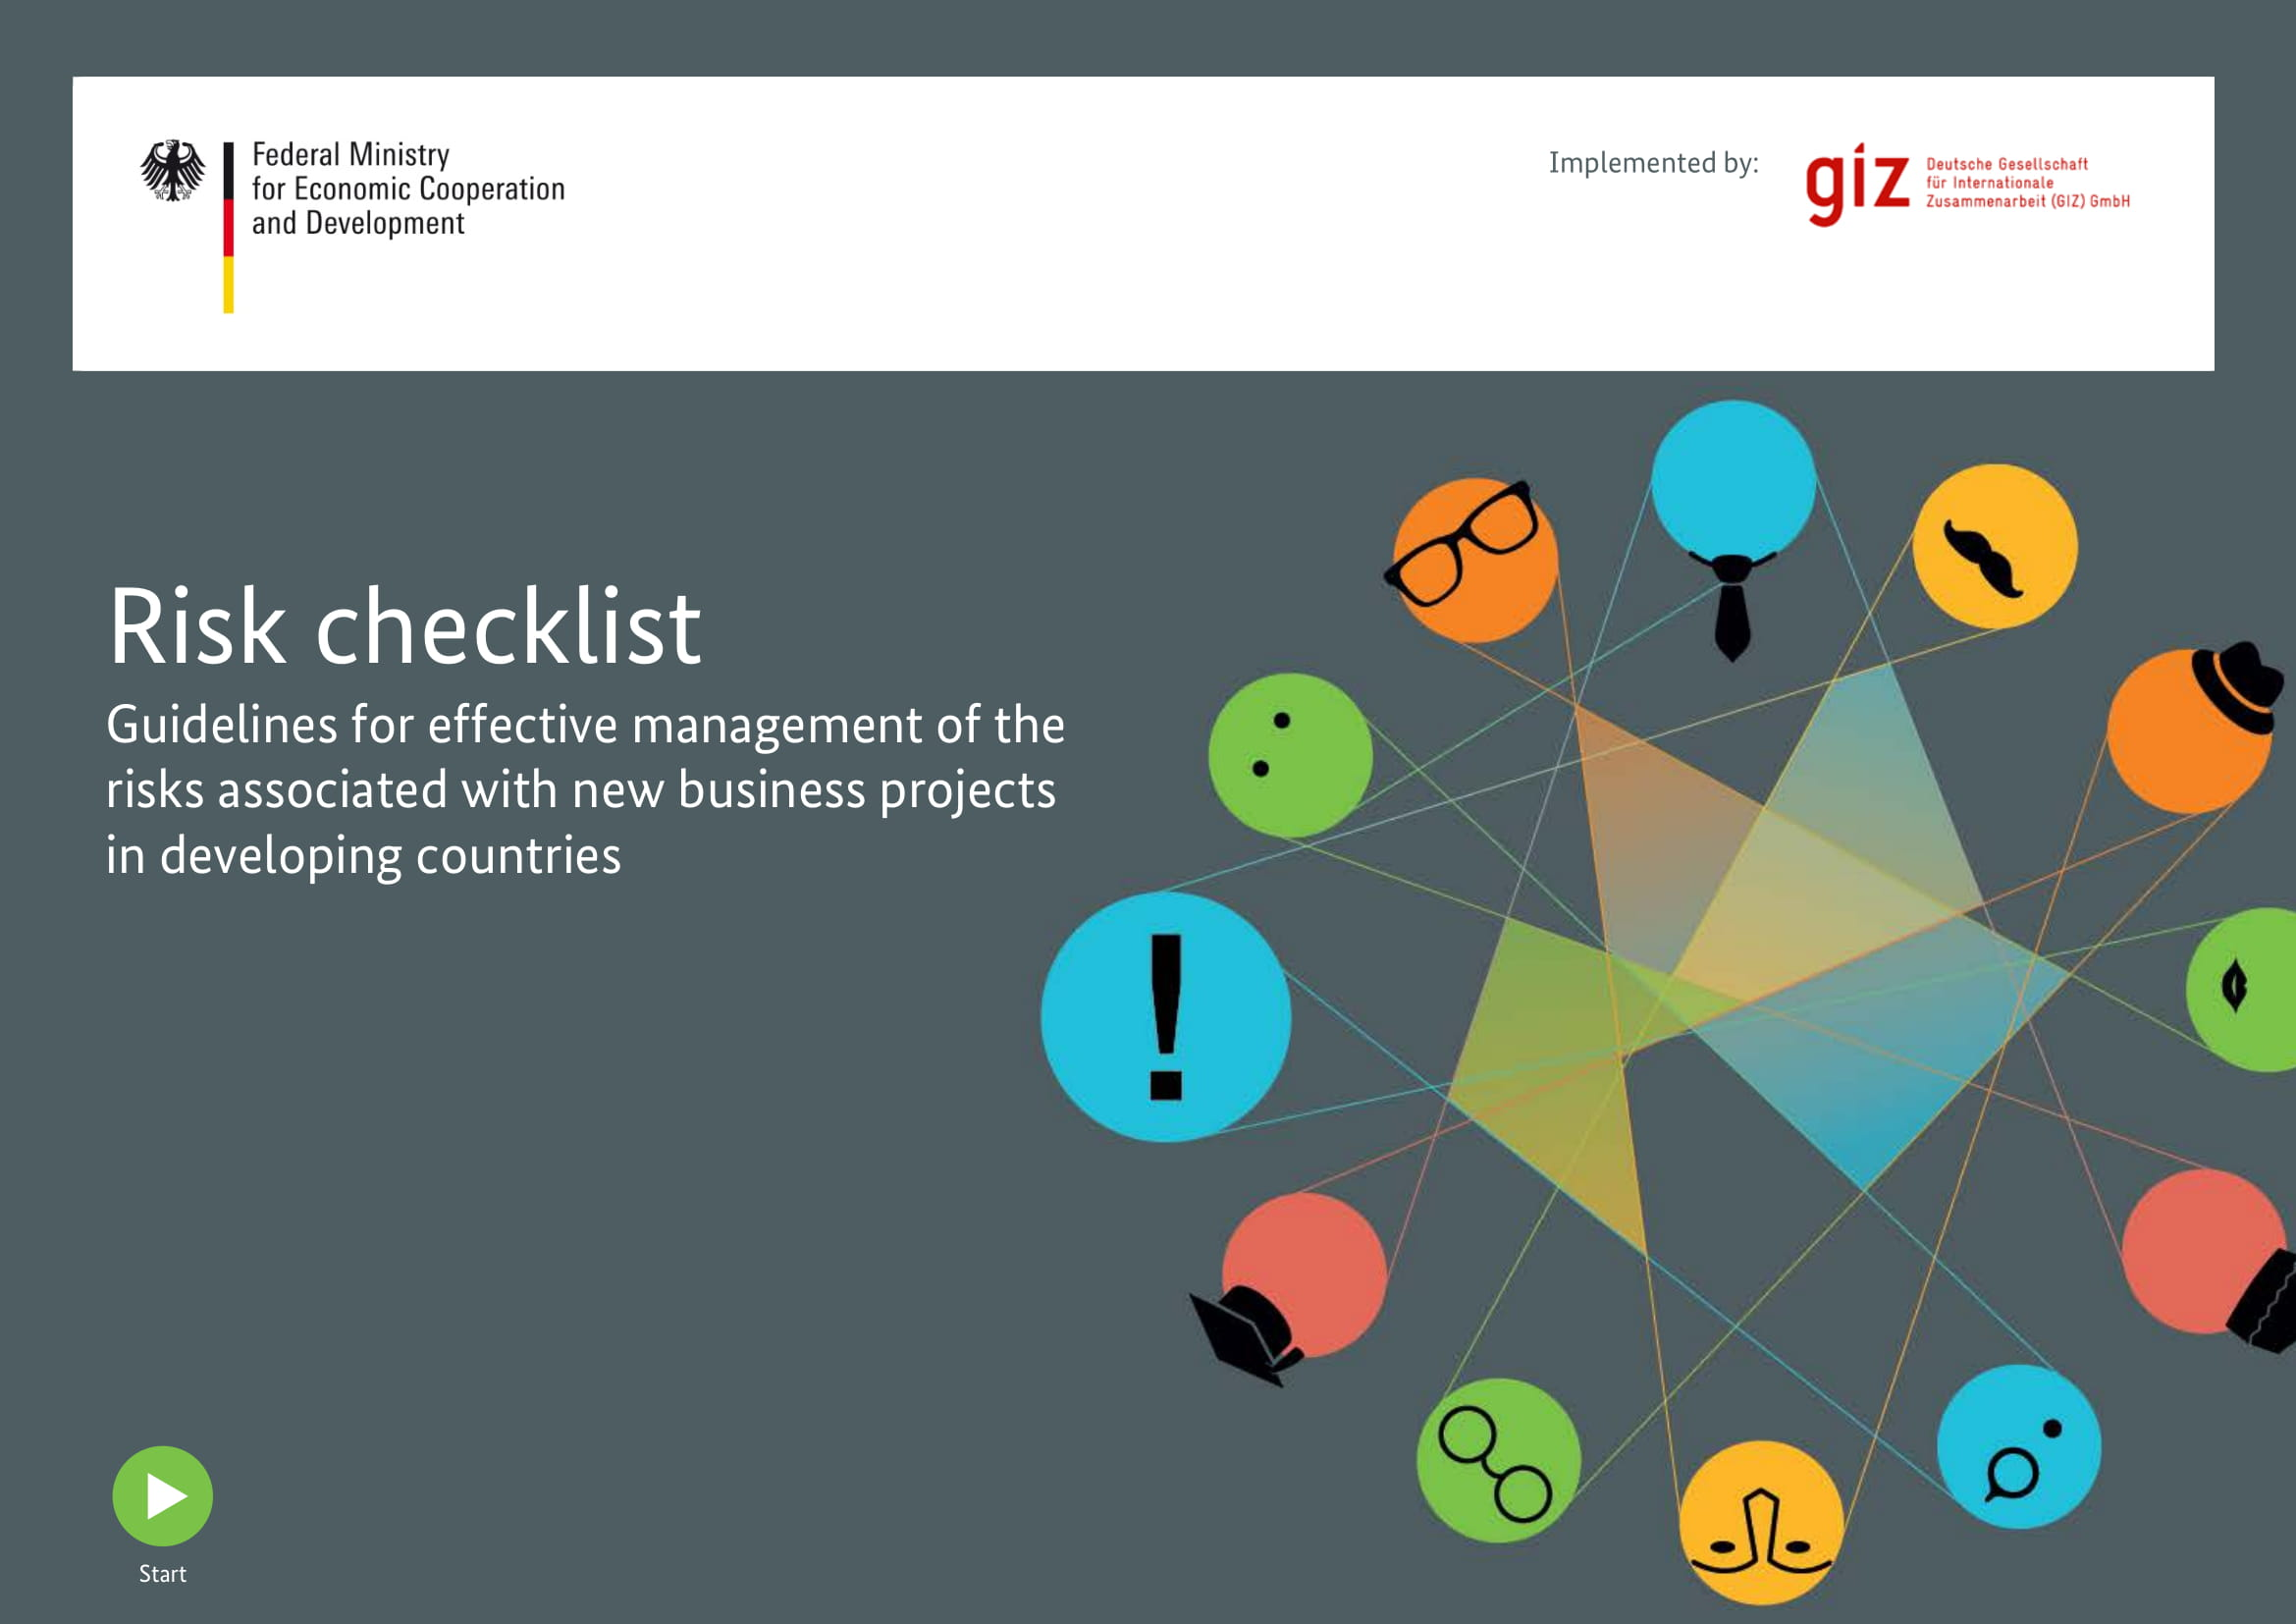 risk identification and management checklist